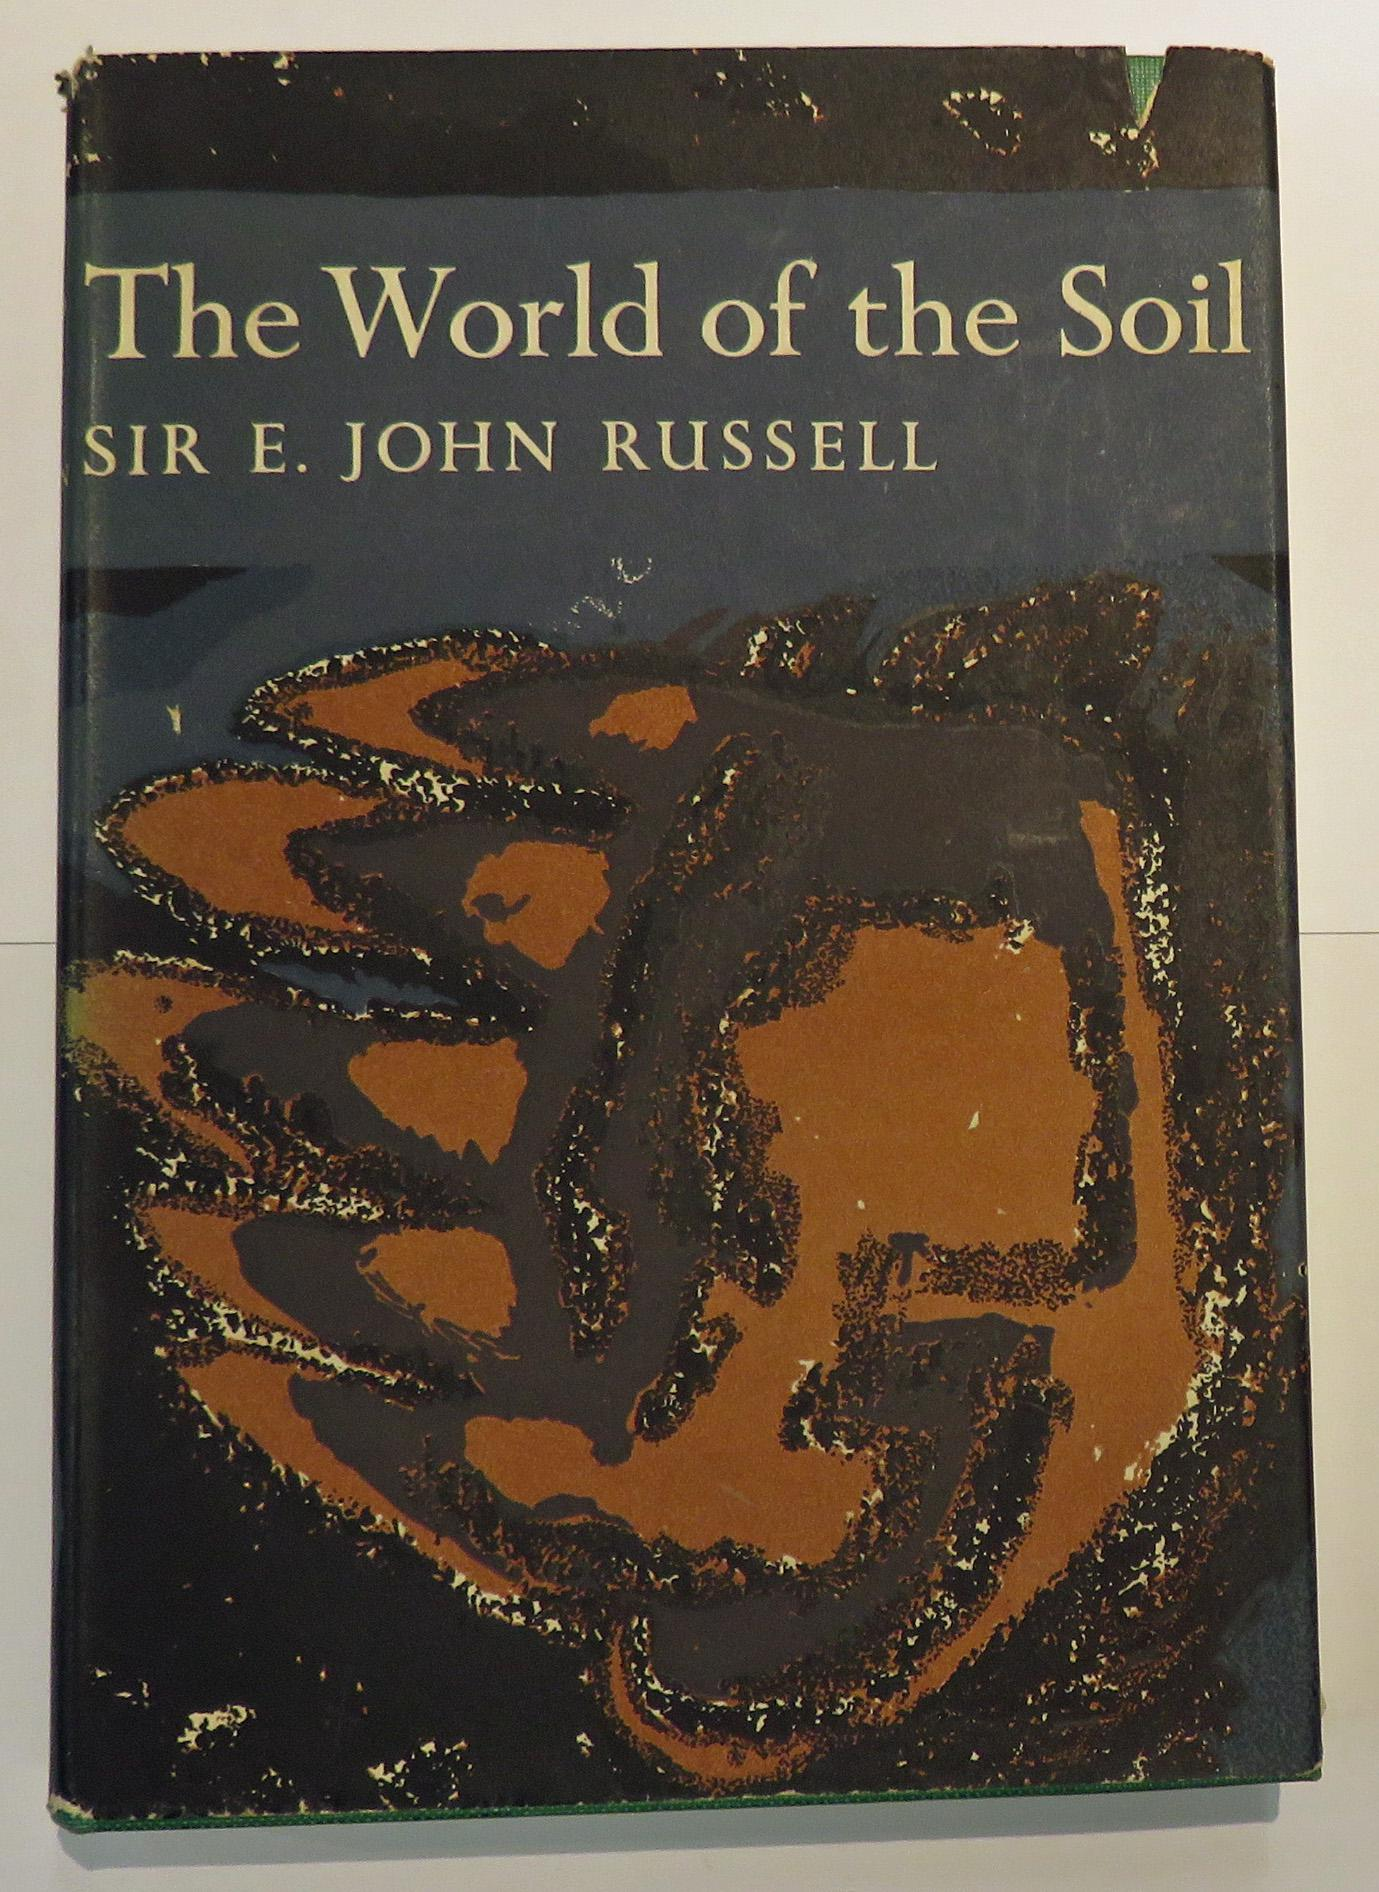 The World of the Soil - The New Naturalist No 35